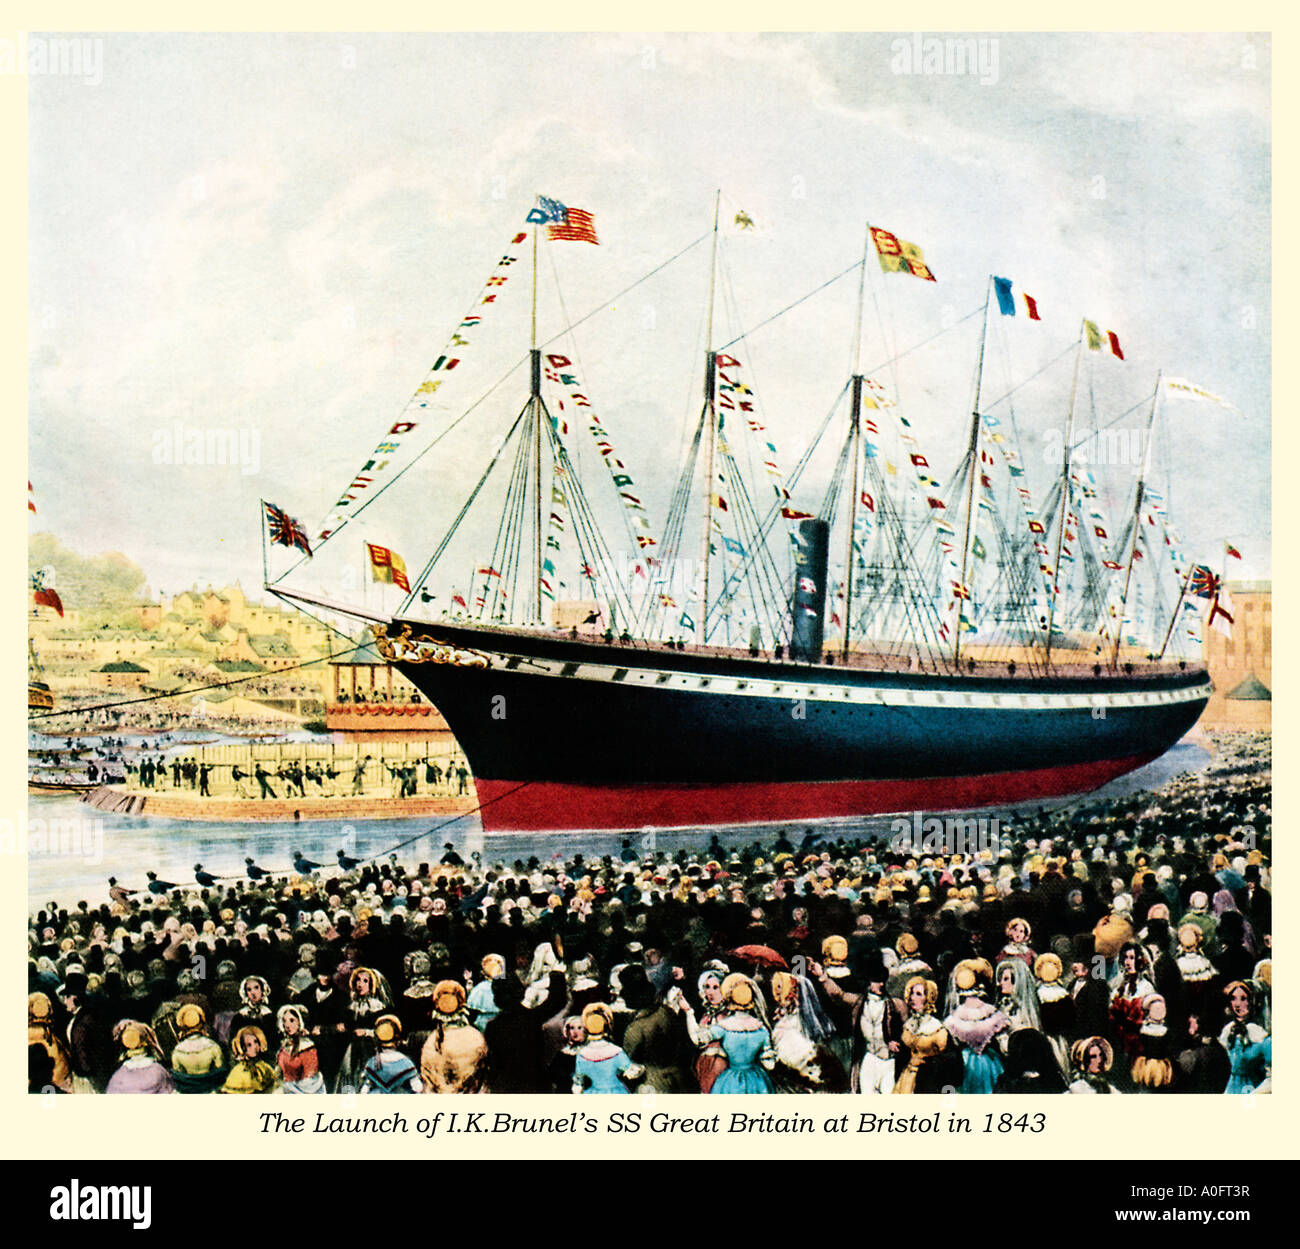 Launch of the SS Great Britain the revolutionary ship of the great engineer Isambard Kingdom Brunel at Bristol in 1843 - Stock Image